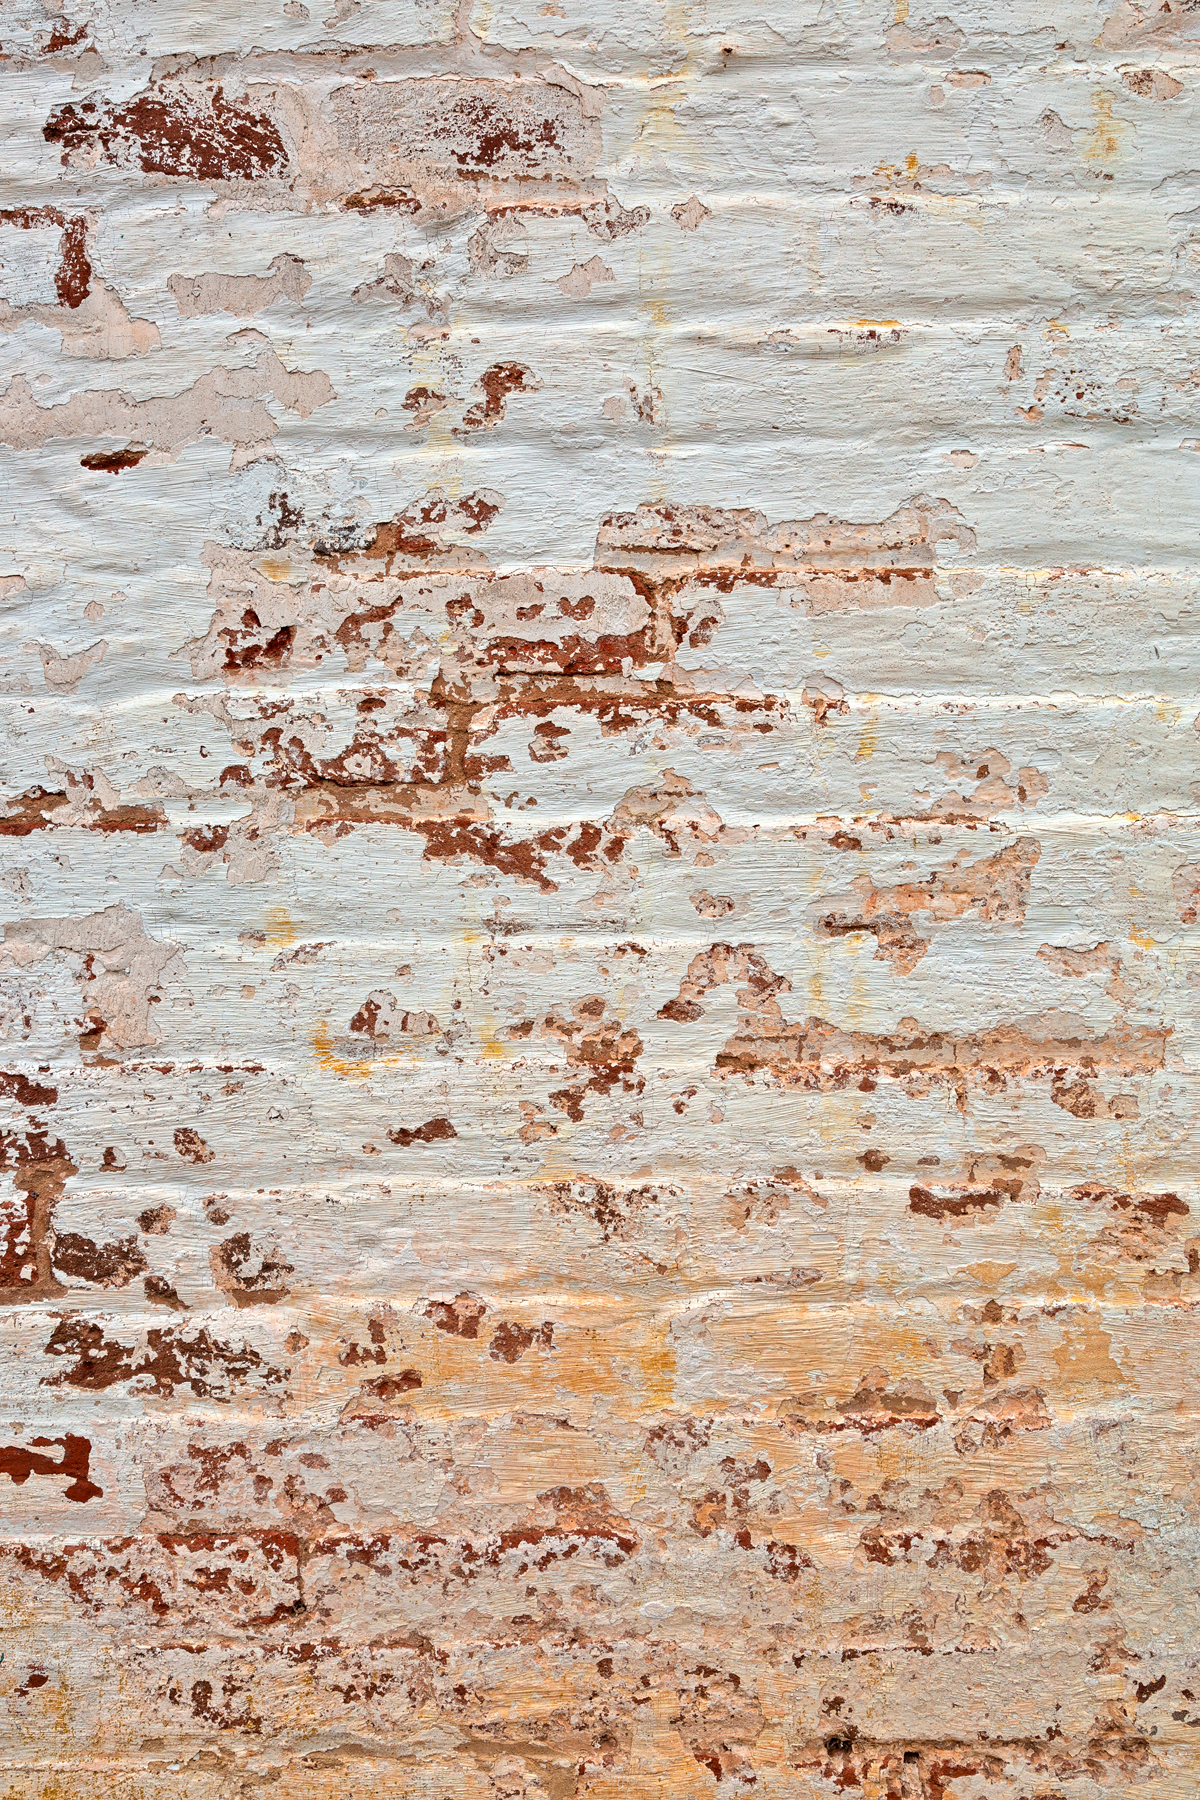 Rustic lockhouse wall - hdr texture photo